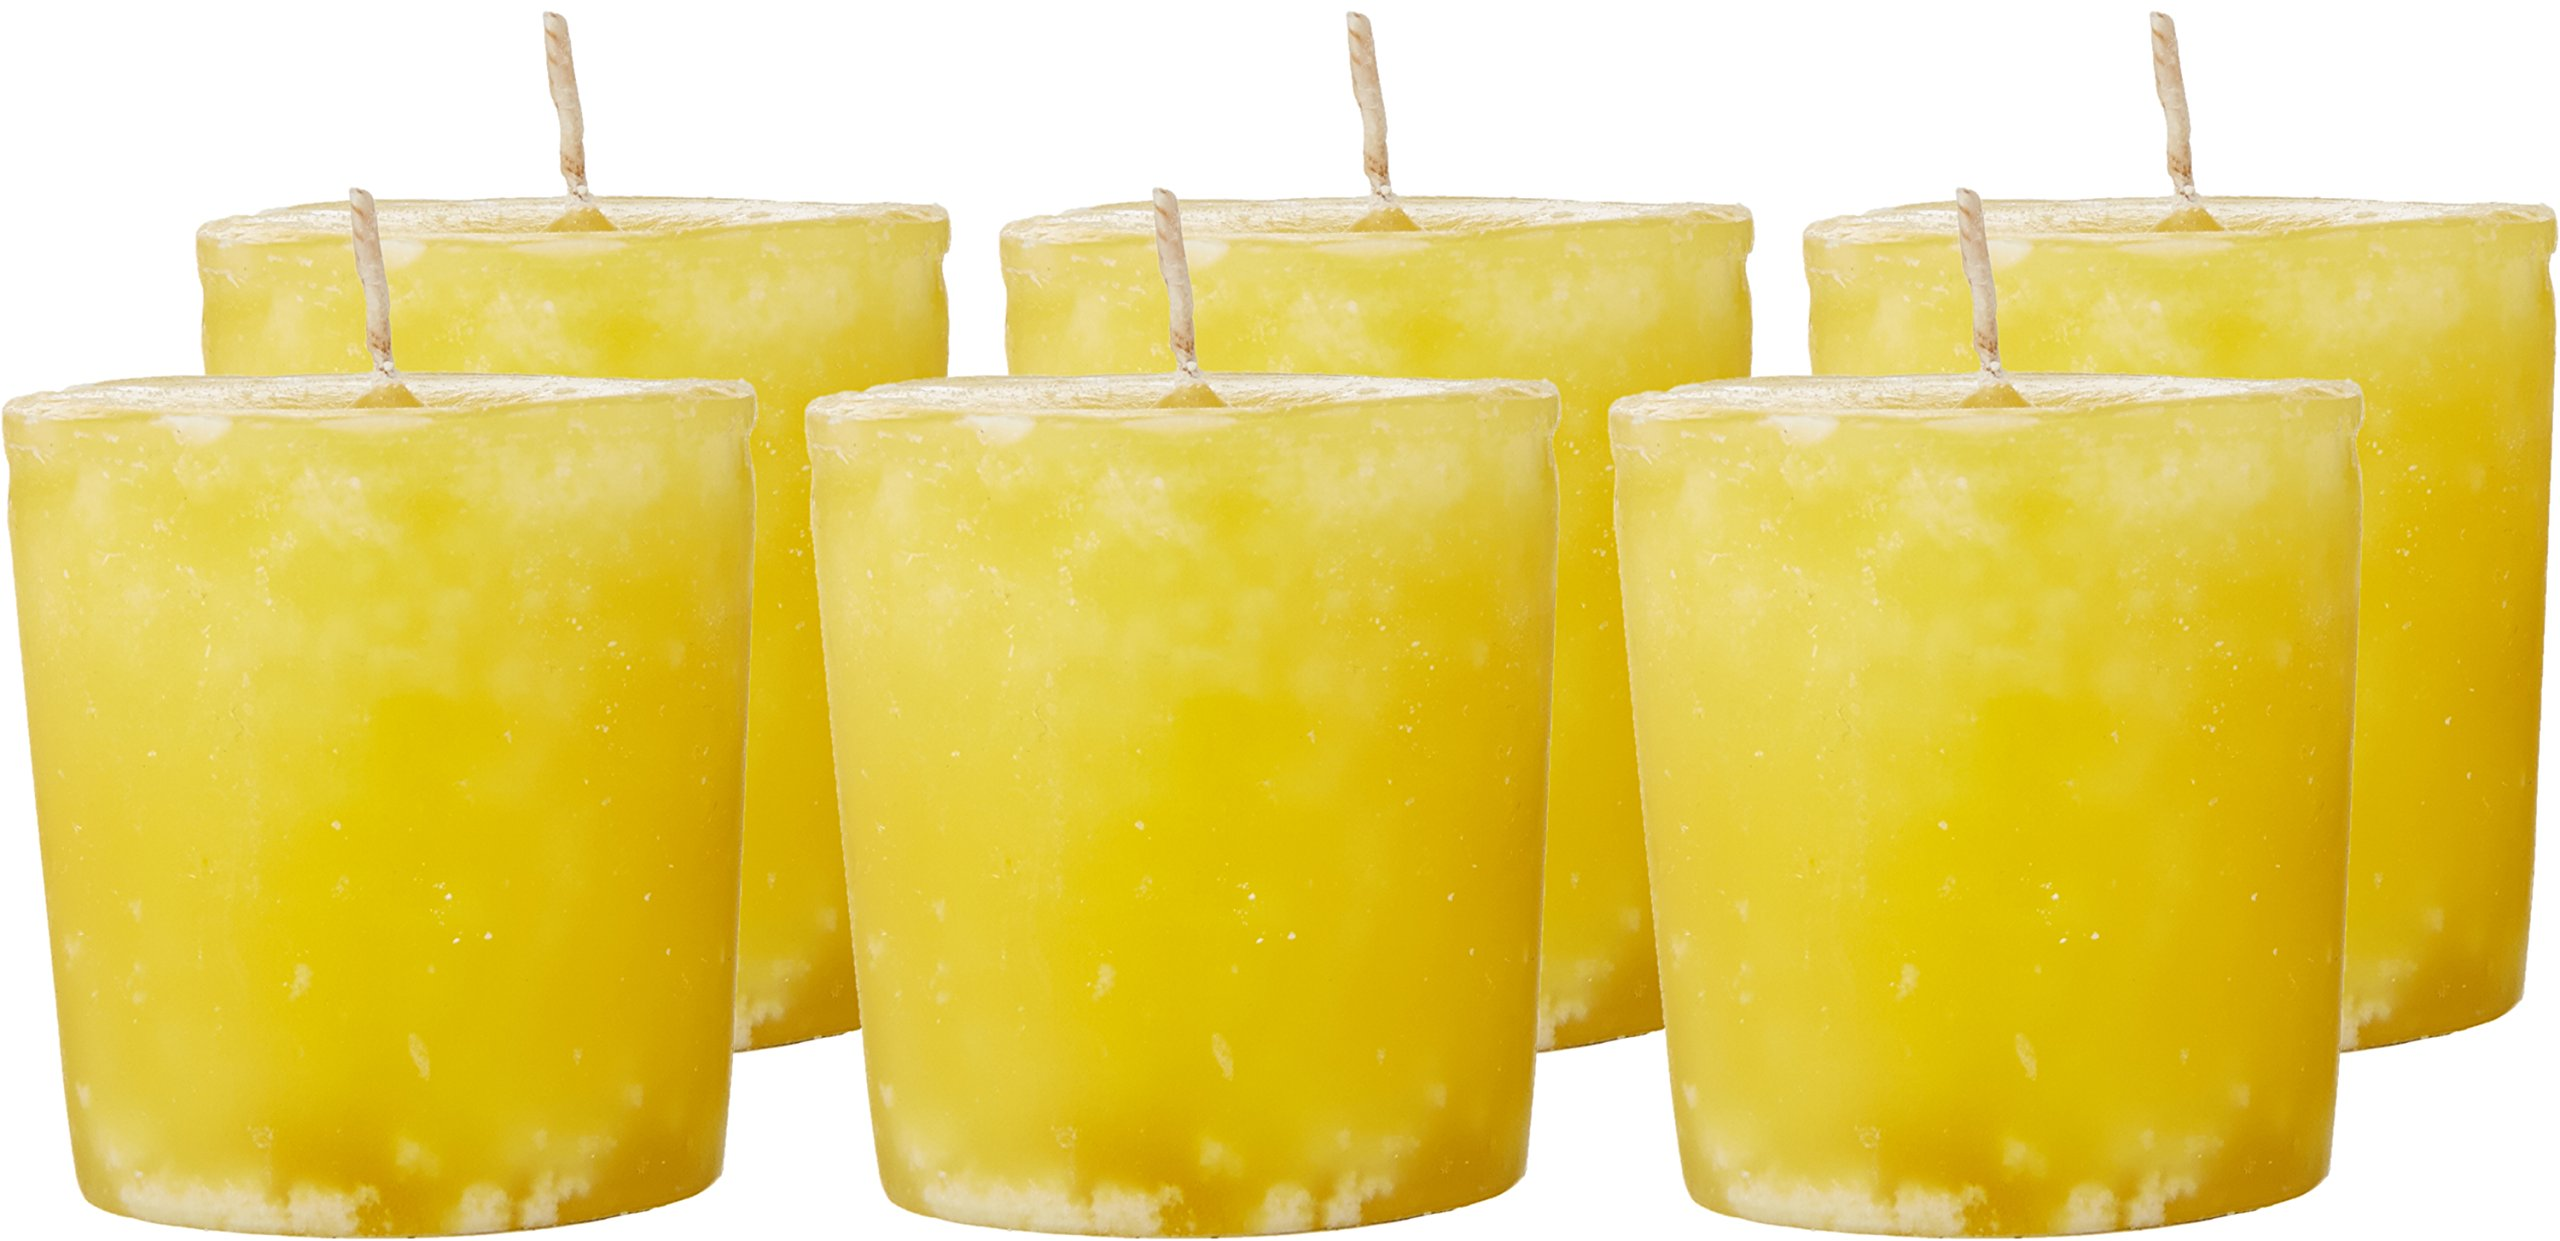 Aroma Naturals Ambiance Votive Candle, Yellow/Orange/Lemongrass, 6 Count by Aroma Naturals (Image #3)